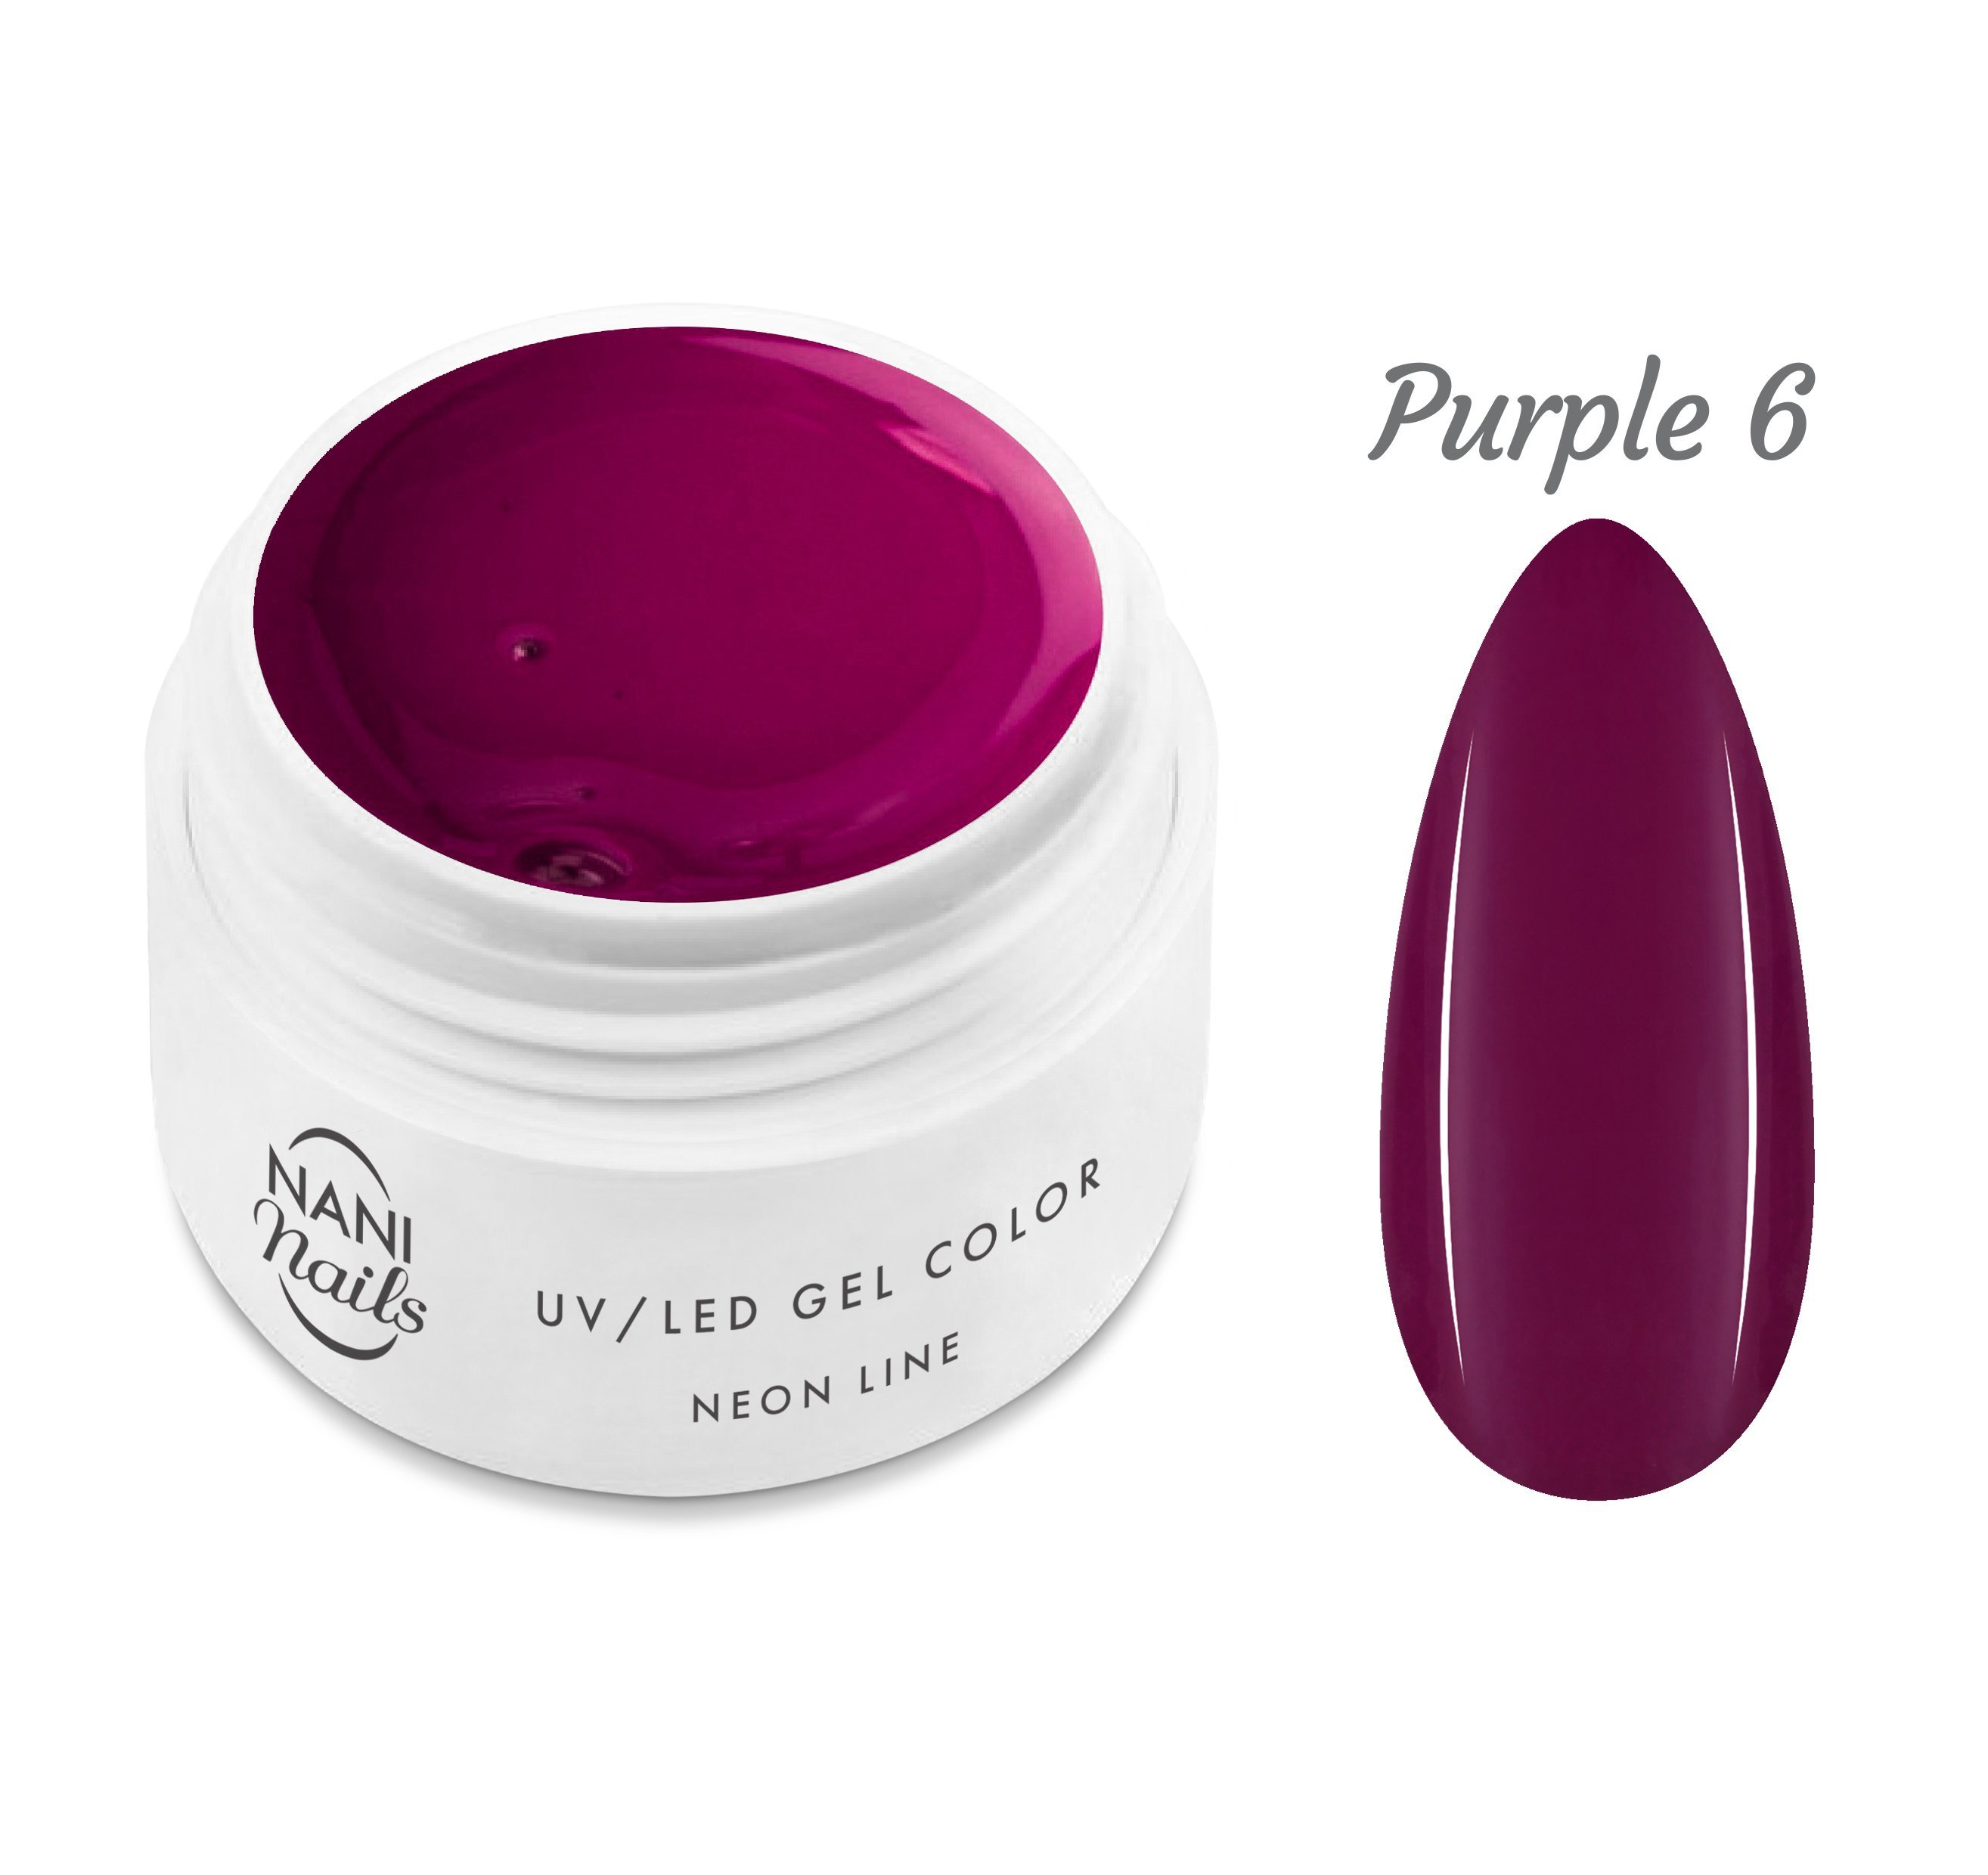 NANI UV gél Neon Line 5 ml - Purple